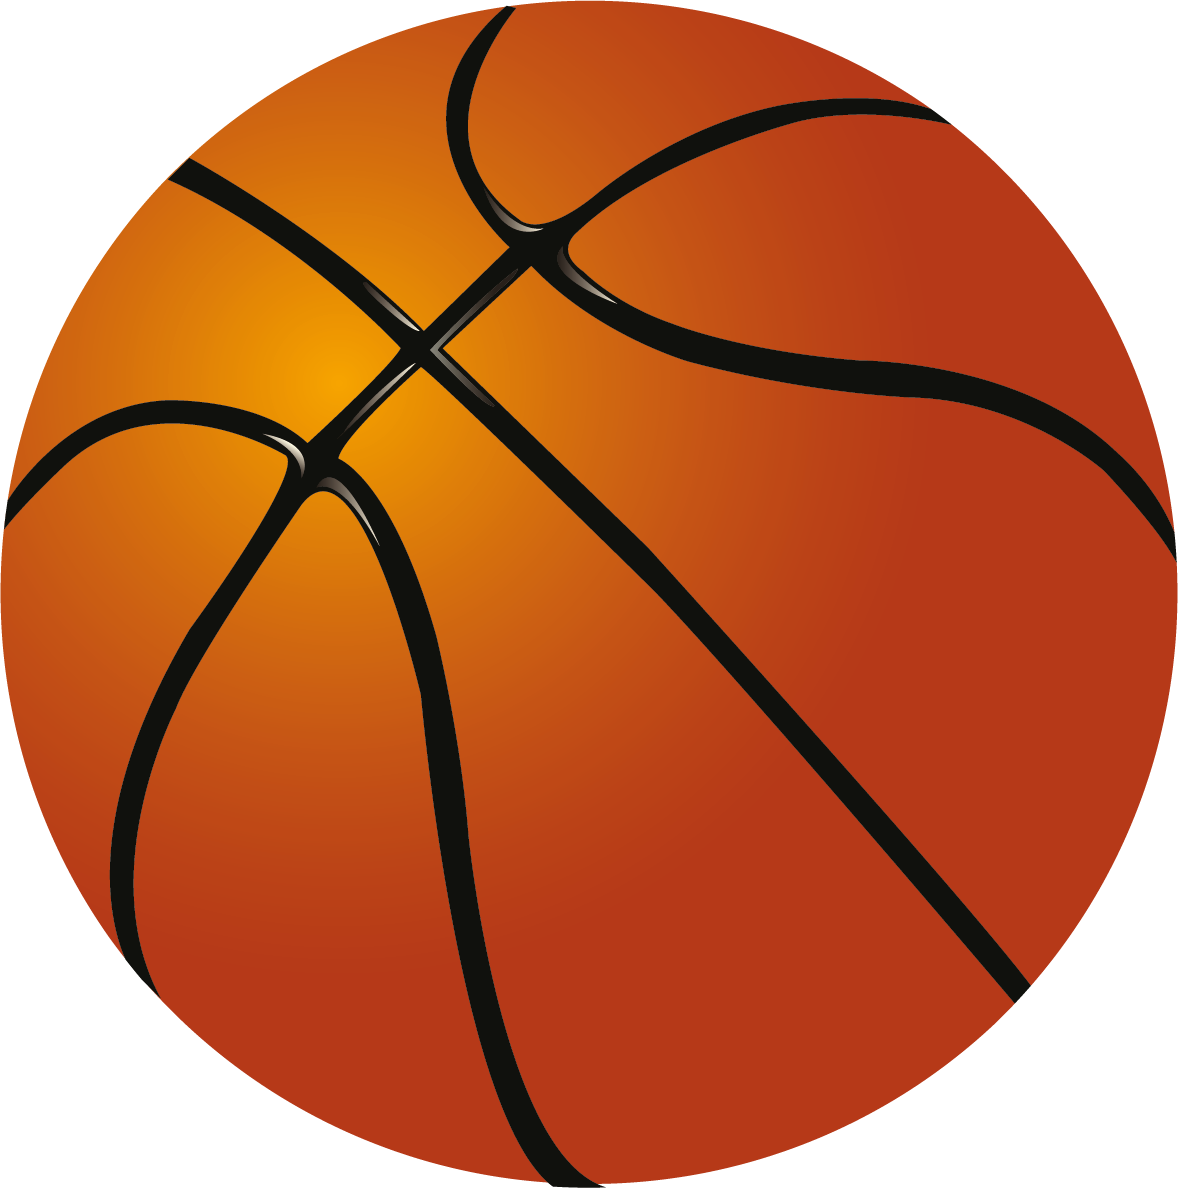 Fun basketball clipart image freeuse download ball - Buscar con Google | Niños | Pinterest | Basketball clipart ... image freeuse download